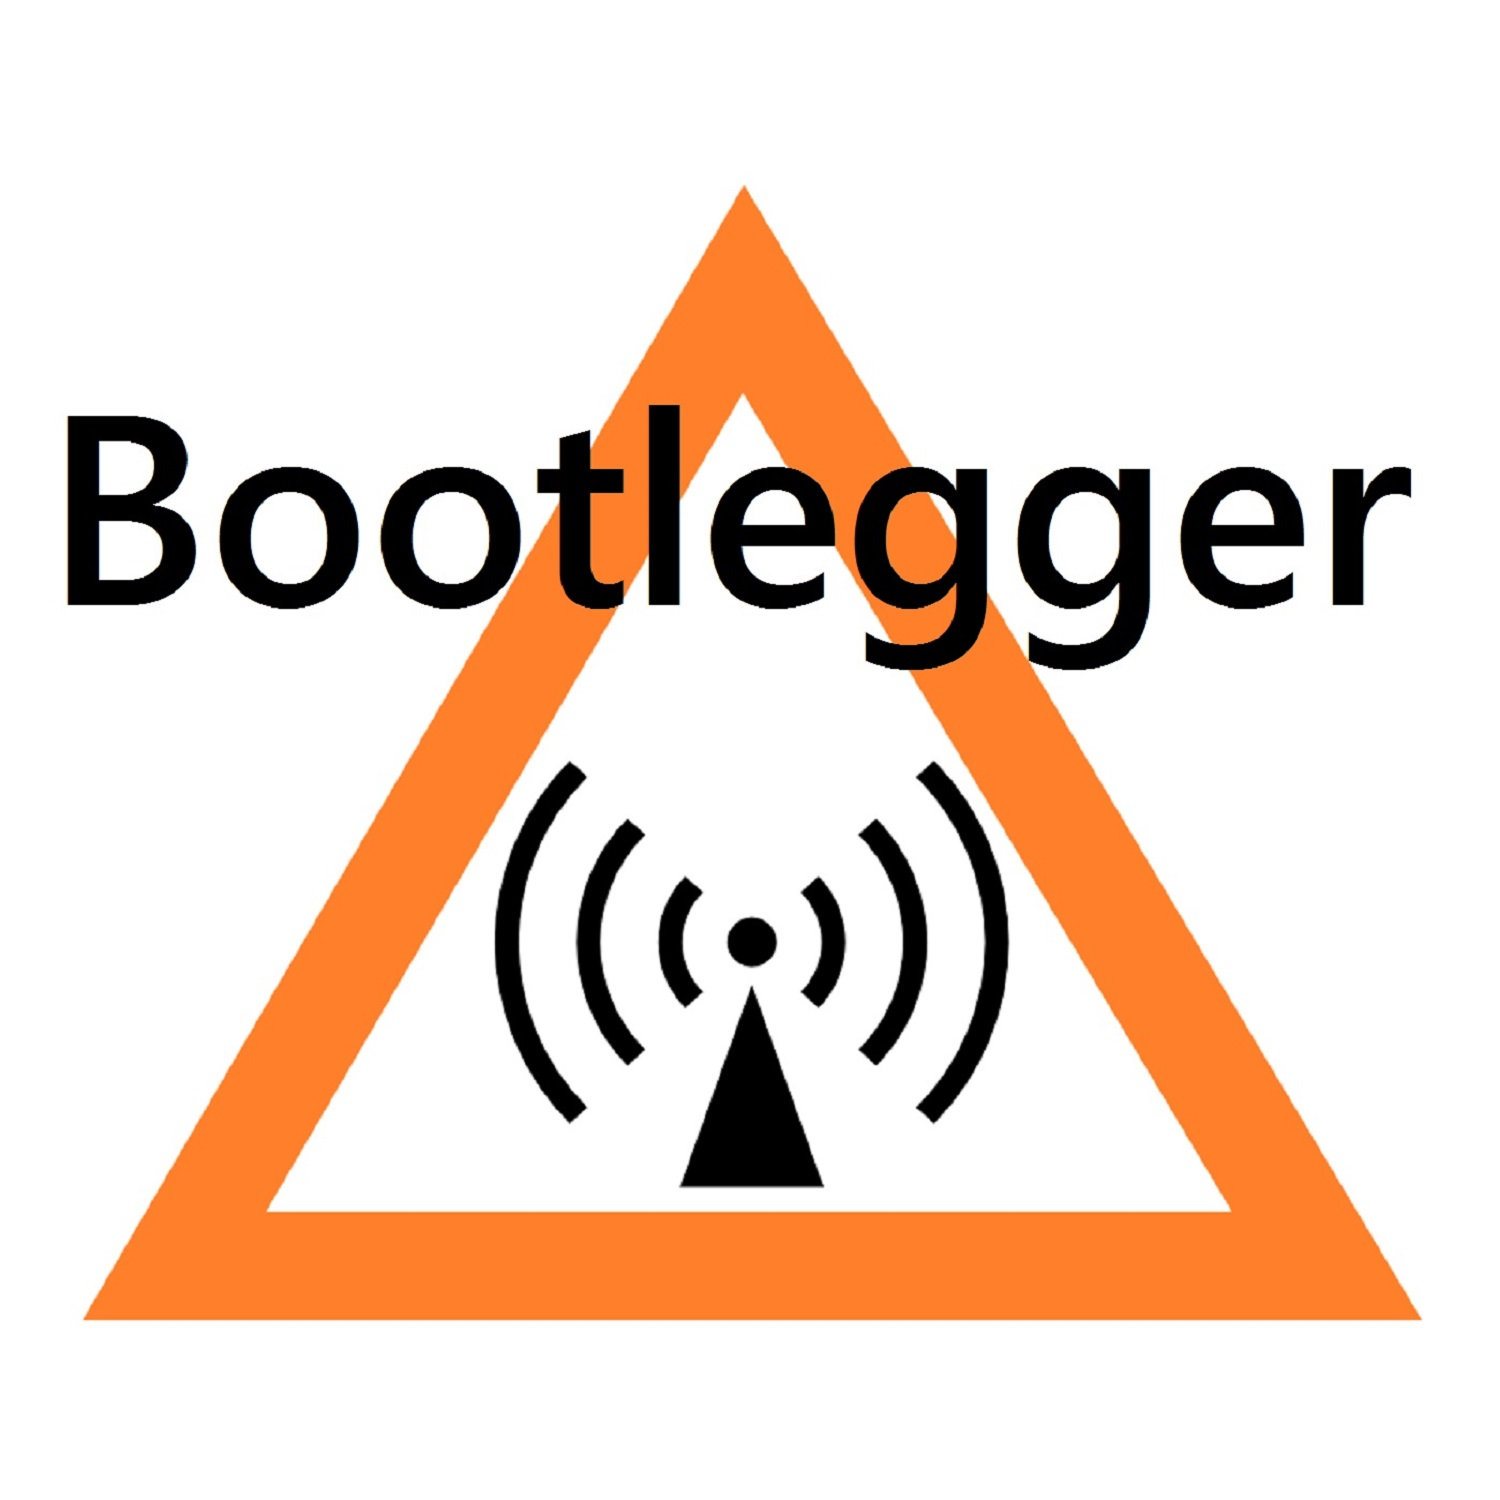 The app allows users to vary between photos and provides the ability to make the poster a profile picture on social media accounts. It also includes a direct link to view camshaft specs, watch videos, share photos and more on the Bootlegger website.